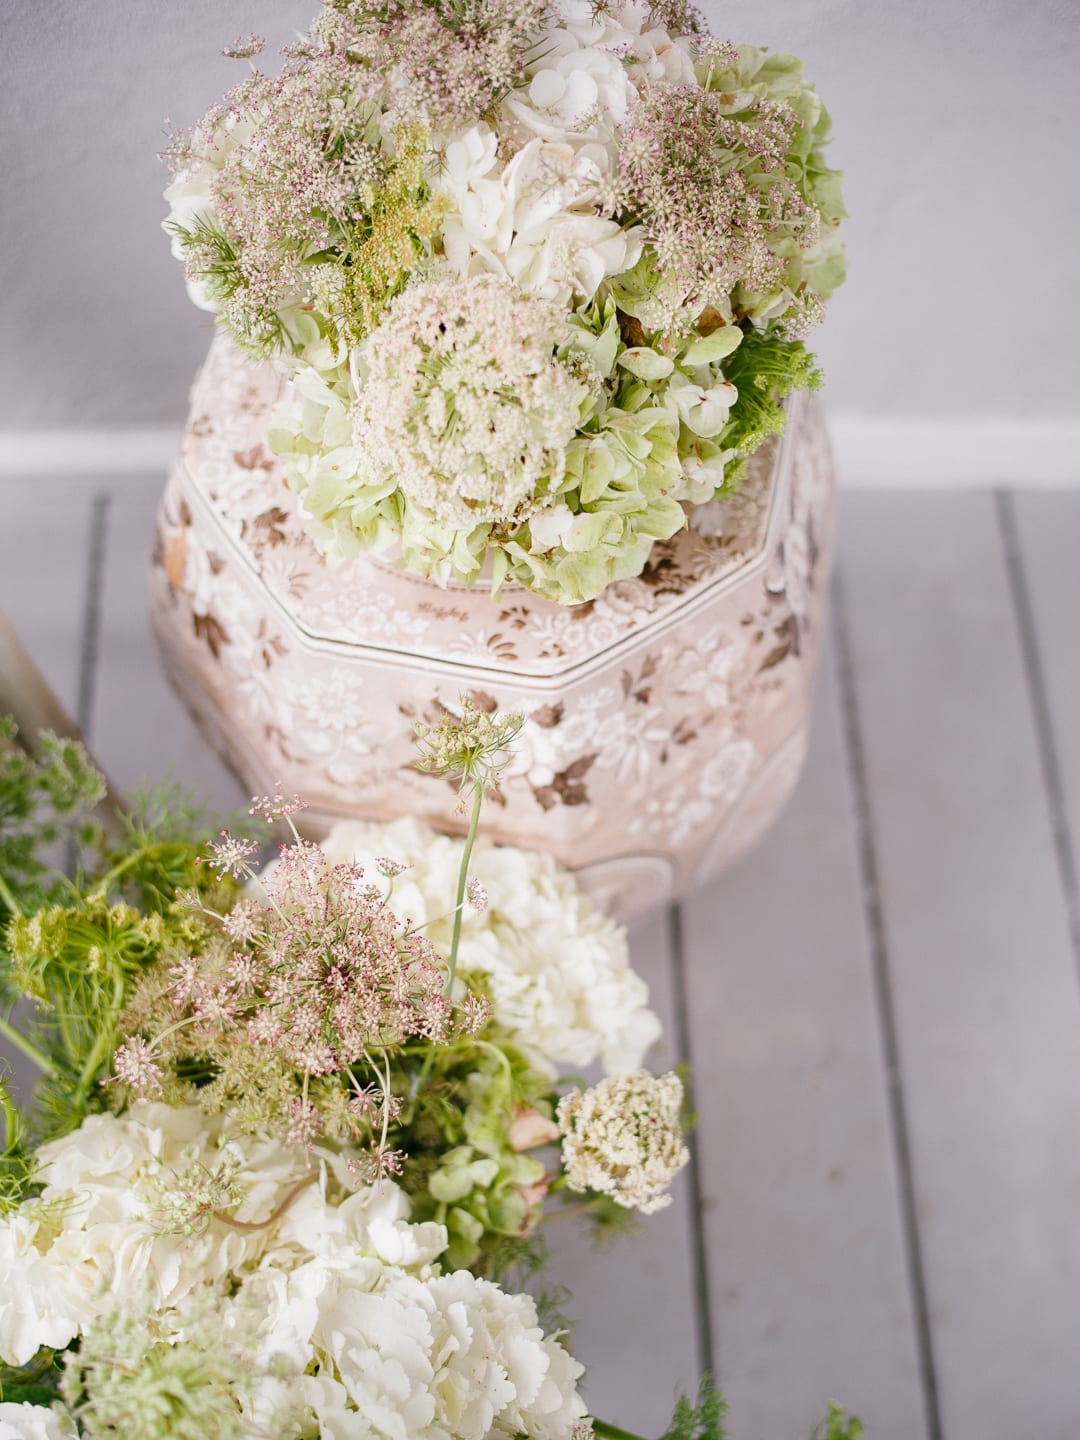 Tight shot of a floral arrangement including and Queen Anne's Lace